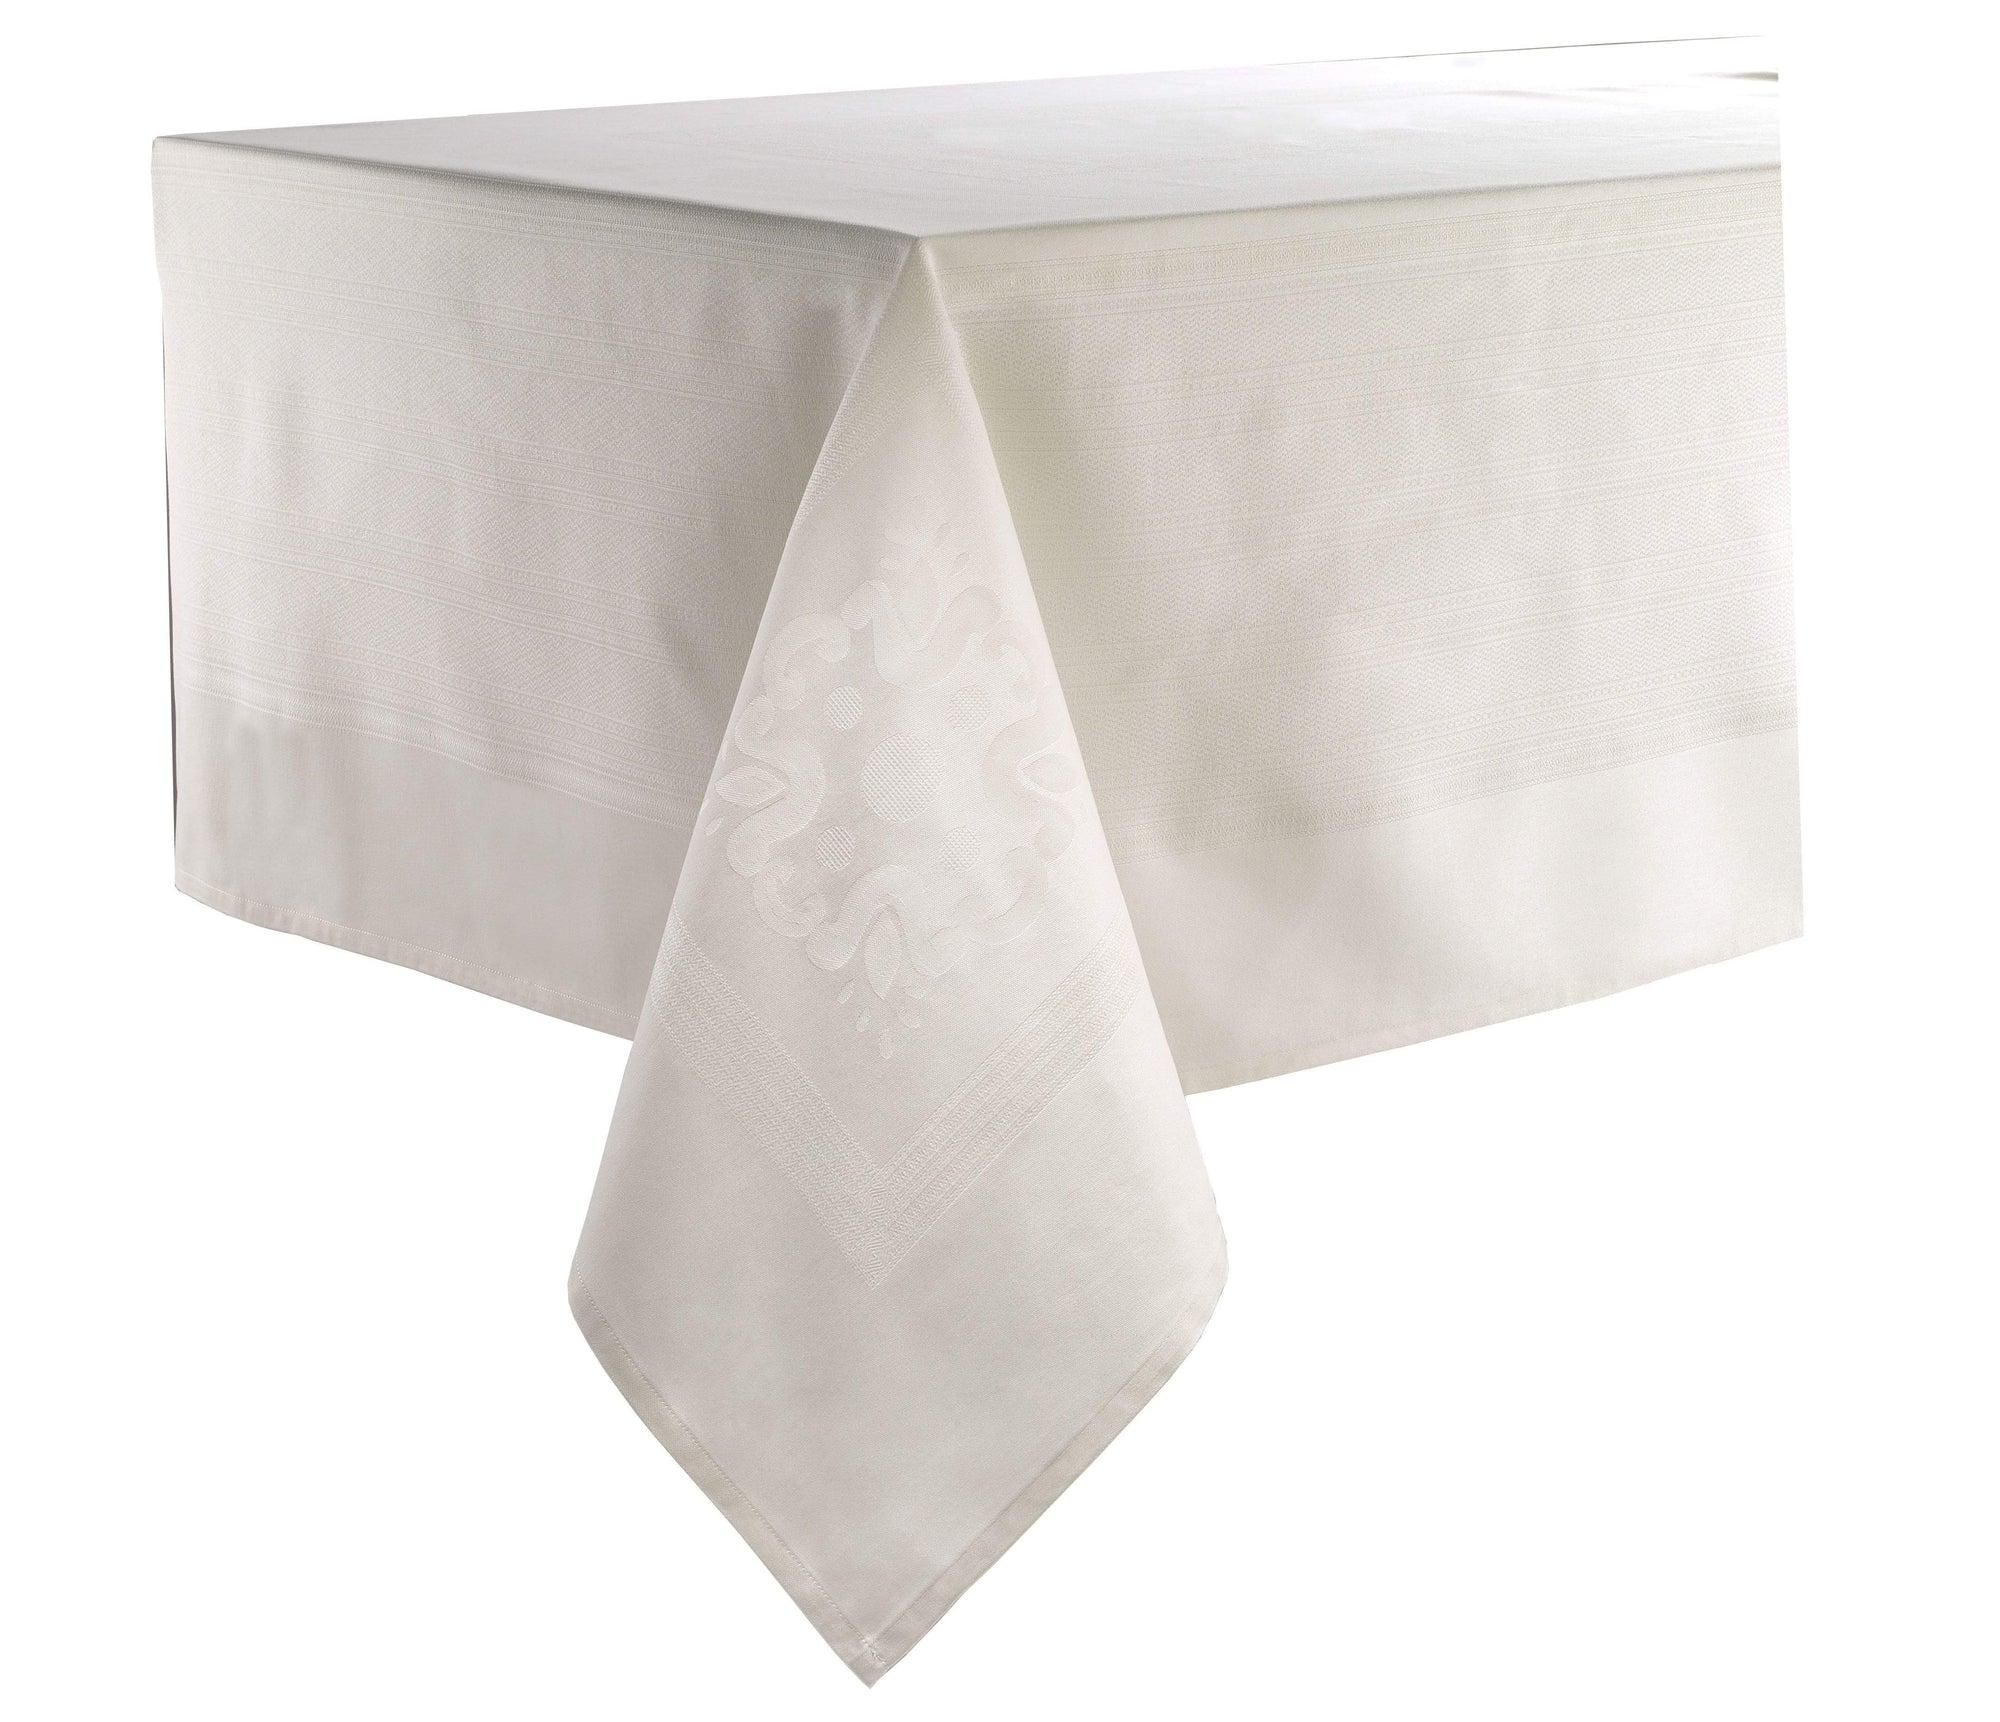 "Bodrum Villa Tablecloth - Ivory - 63"" x 144"""